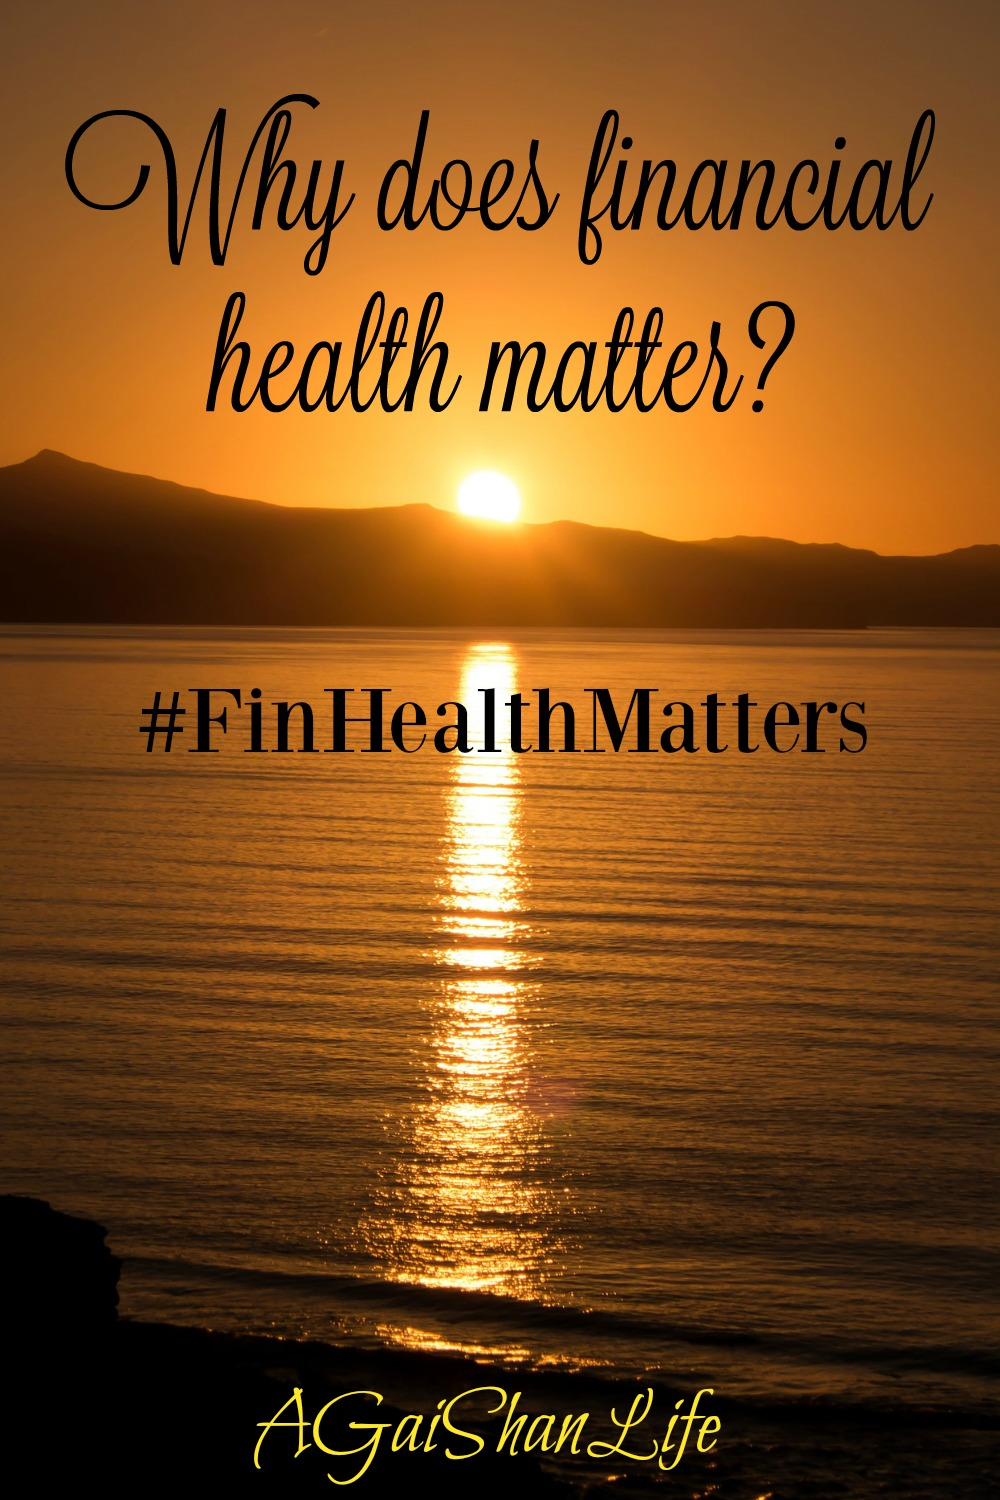 Why financial health matters to us: please share with the #FinHealthMatters tag